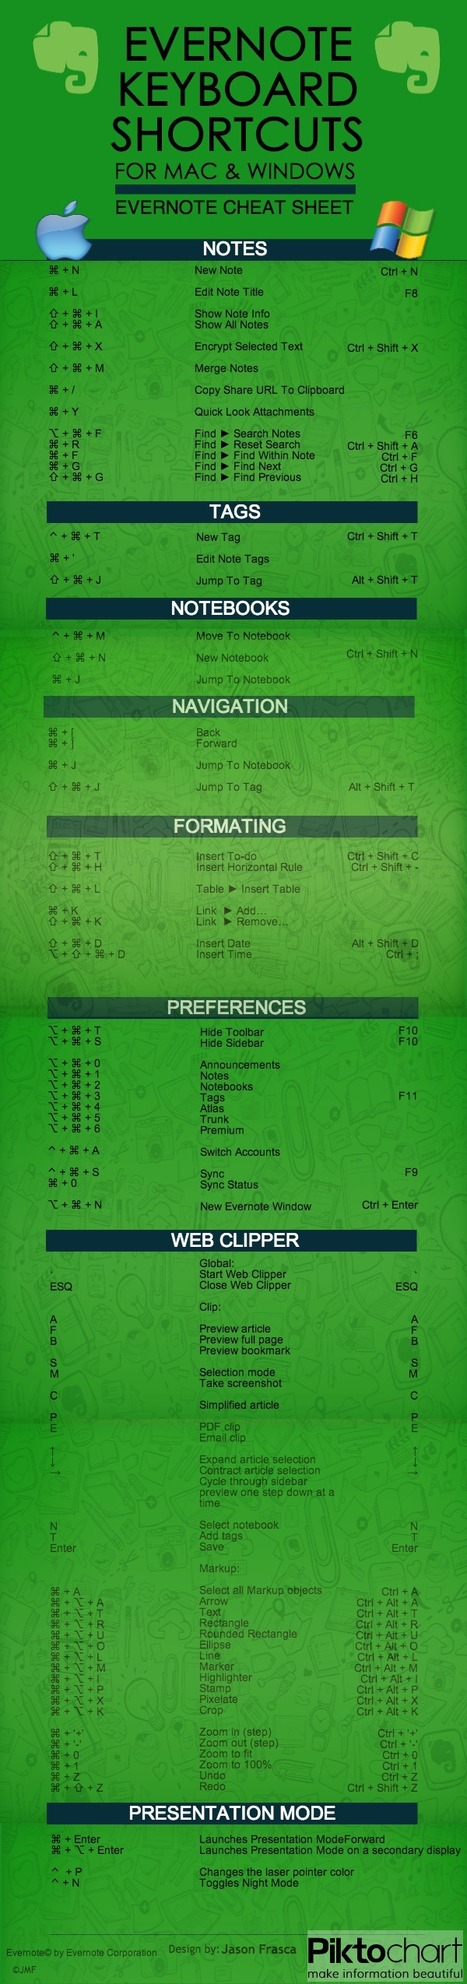 Evernote Keyboard Shortcuts for Mac & Windows Cheat Sheet [INFOGRAPHIC] | Time to Learn | Scoop.it